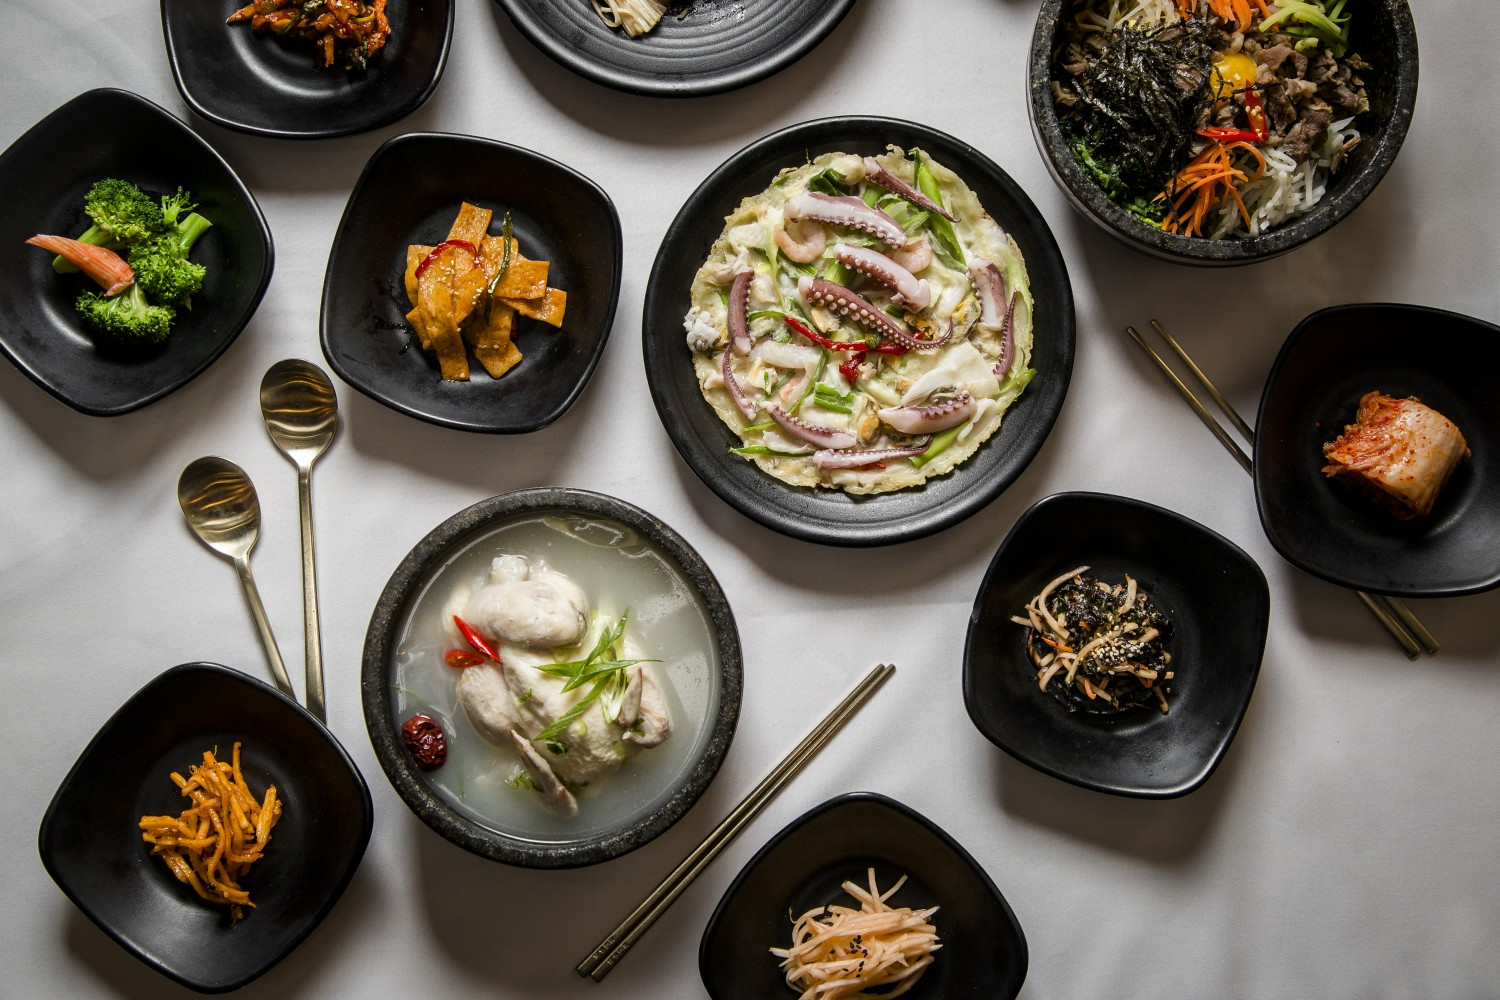 A colorful array of classic Korean dishes, alongside banchan, or side dishes, at missKOREA. (Samira Bouaou/The Epoch Times)